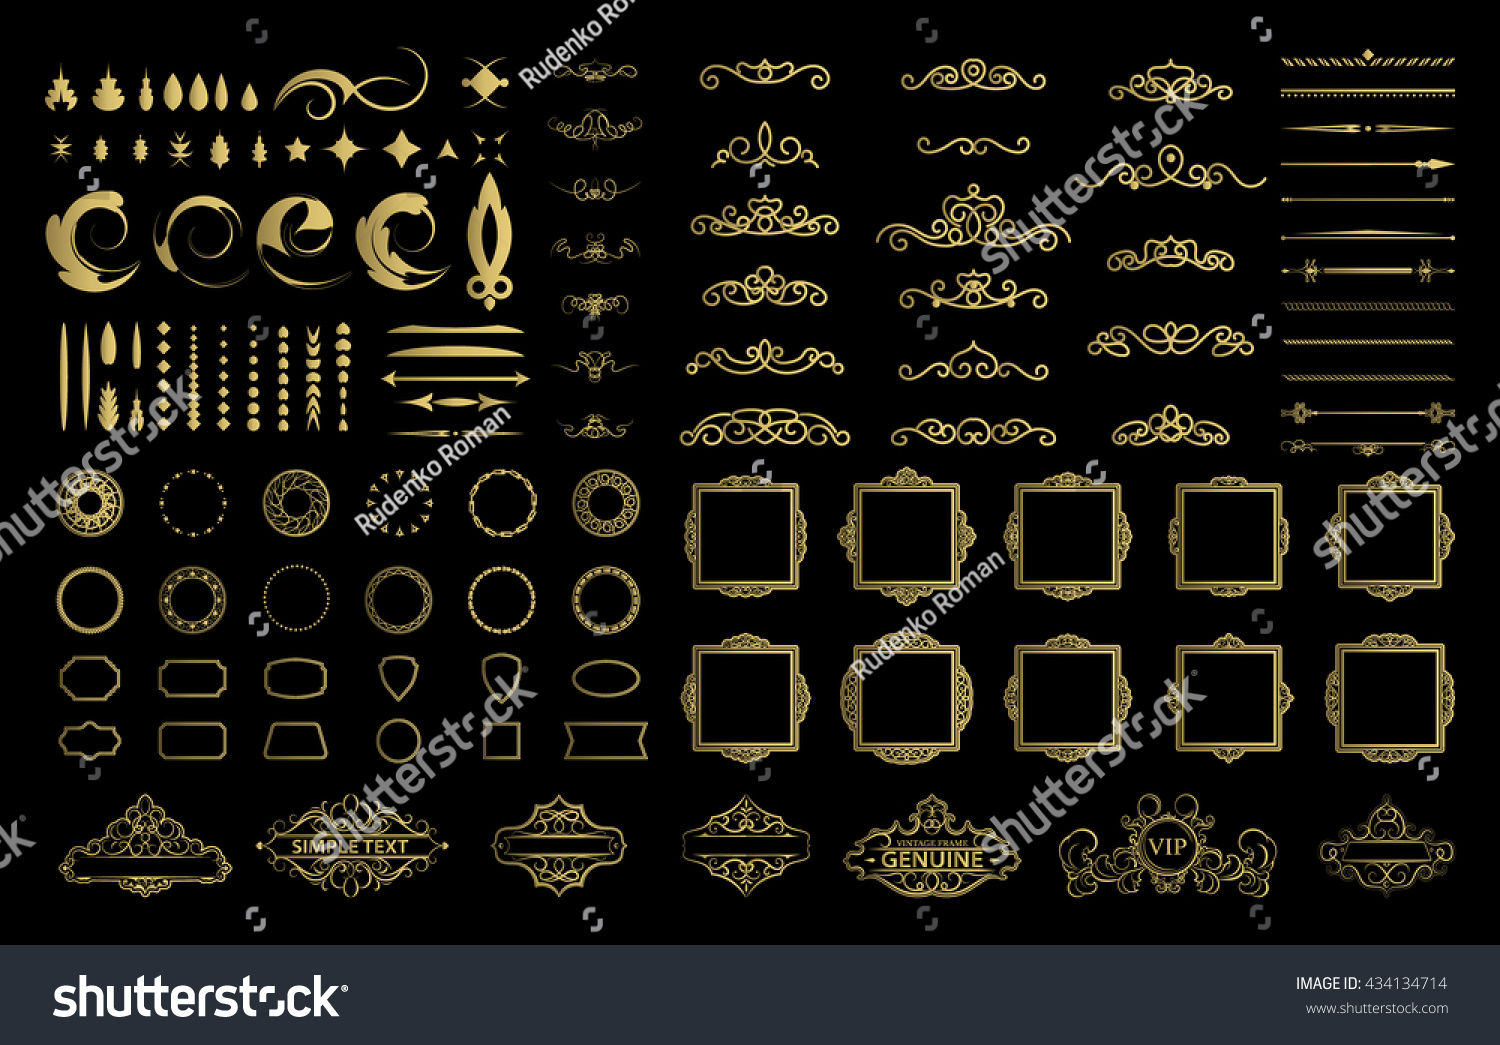 Wicker lines and decor elements in vector Vintage borders frame collection in gold color Retro page decoration Decoration for logos wedding album or restaurant menu Calligraphic design elements